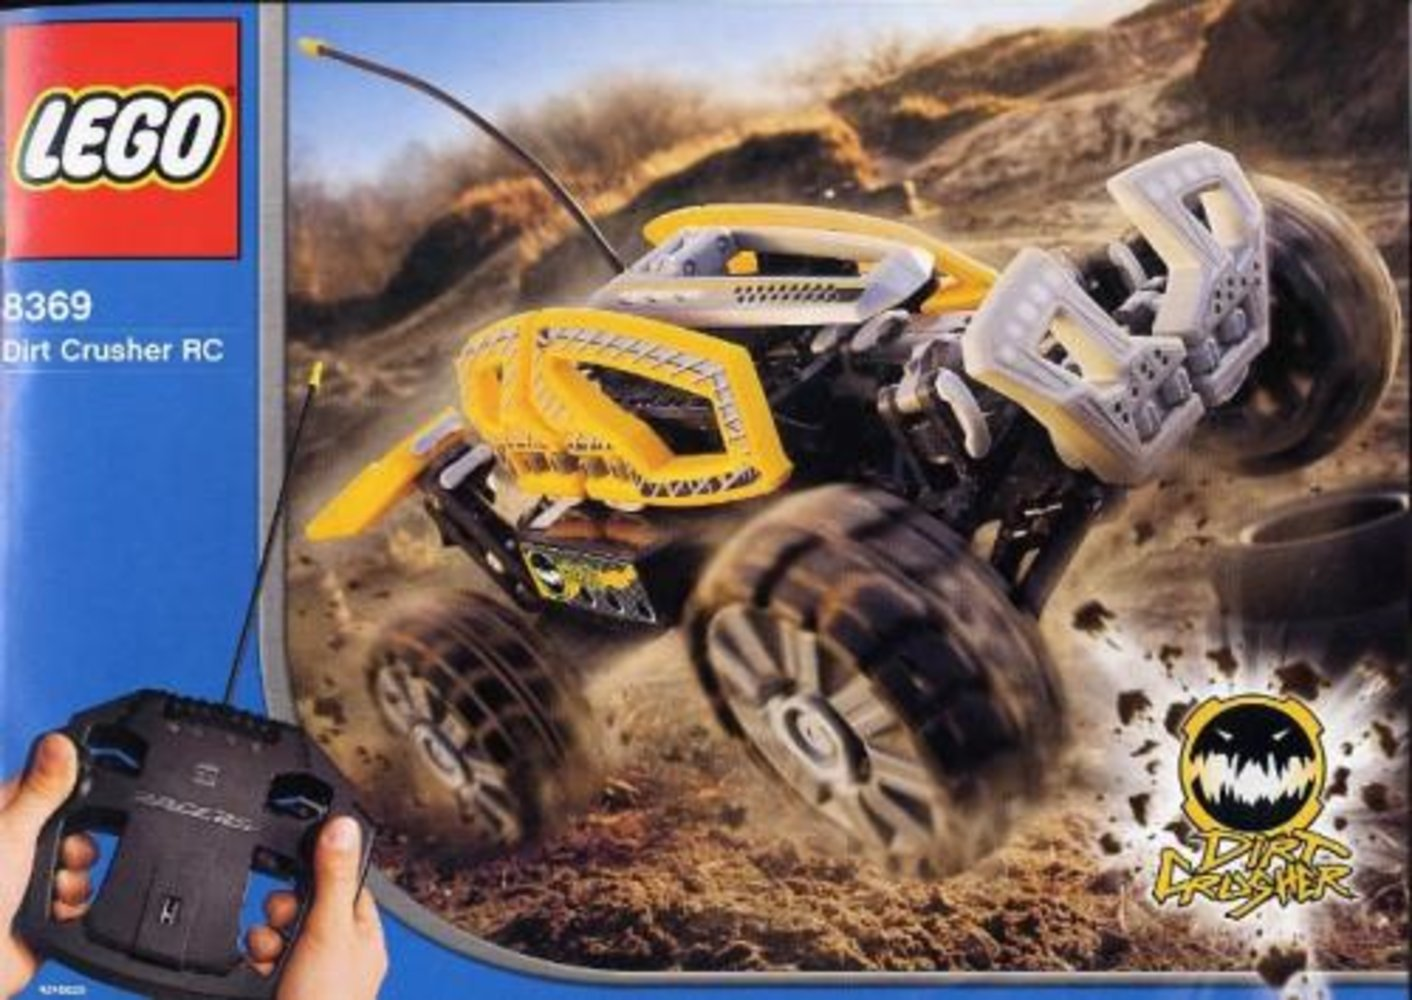 Dirt Crusher RC (Blue)